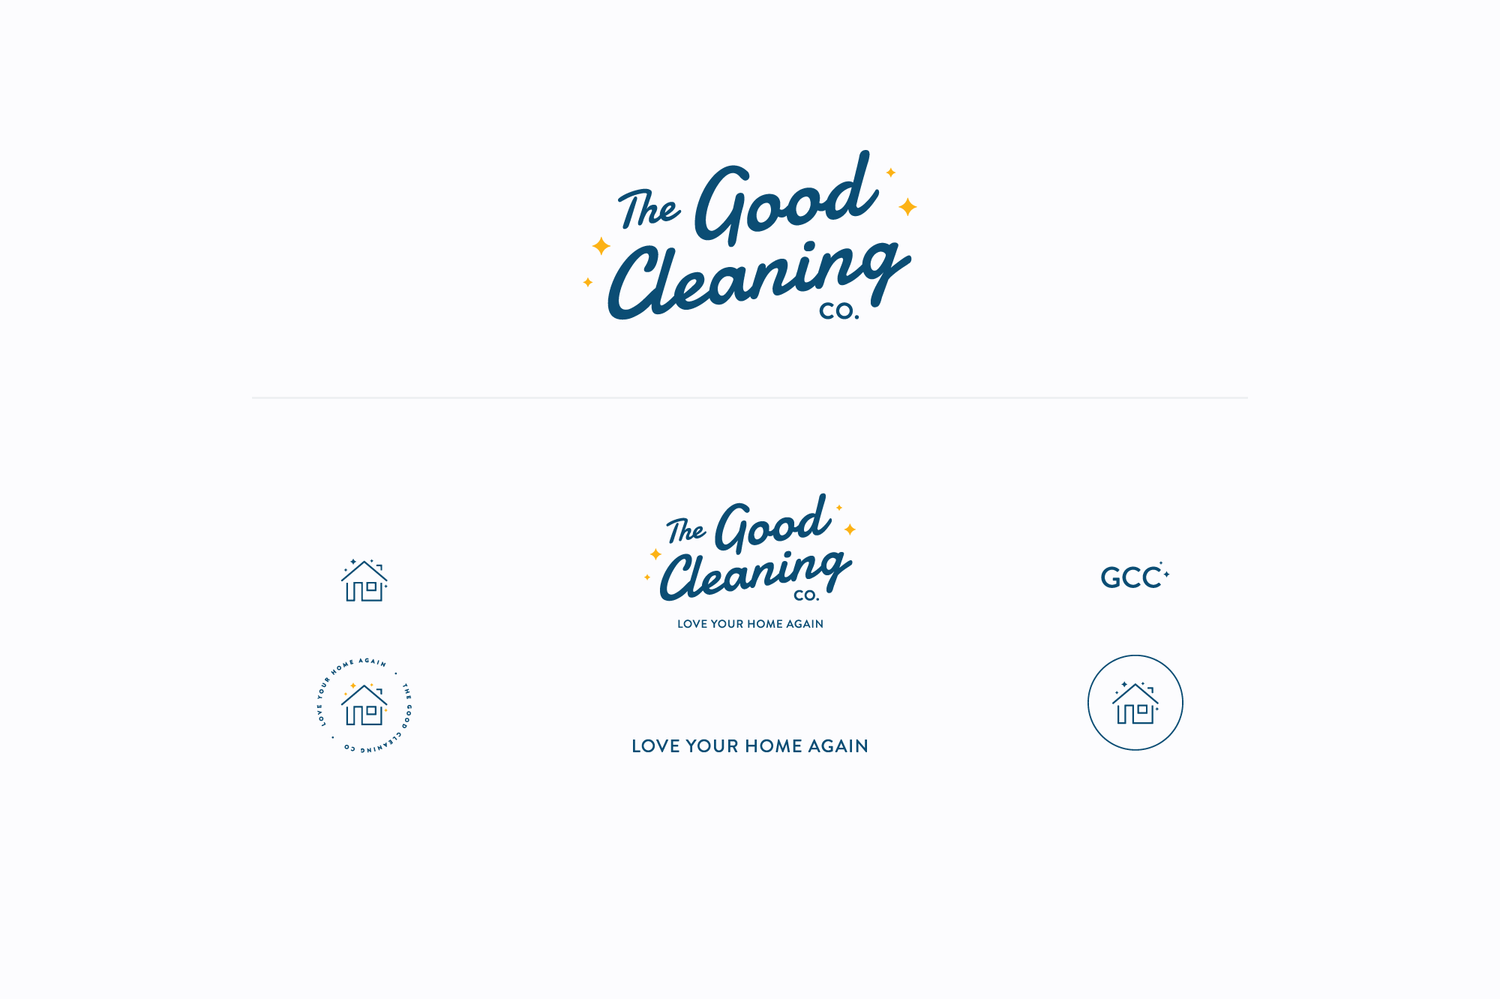 The Good Cleaning Company Brand Design